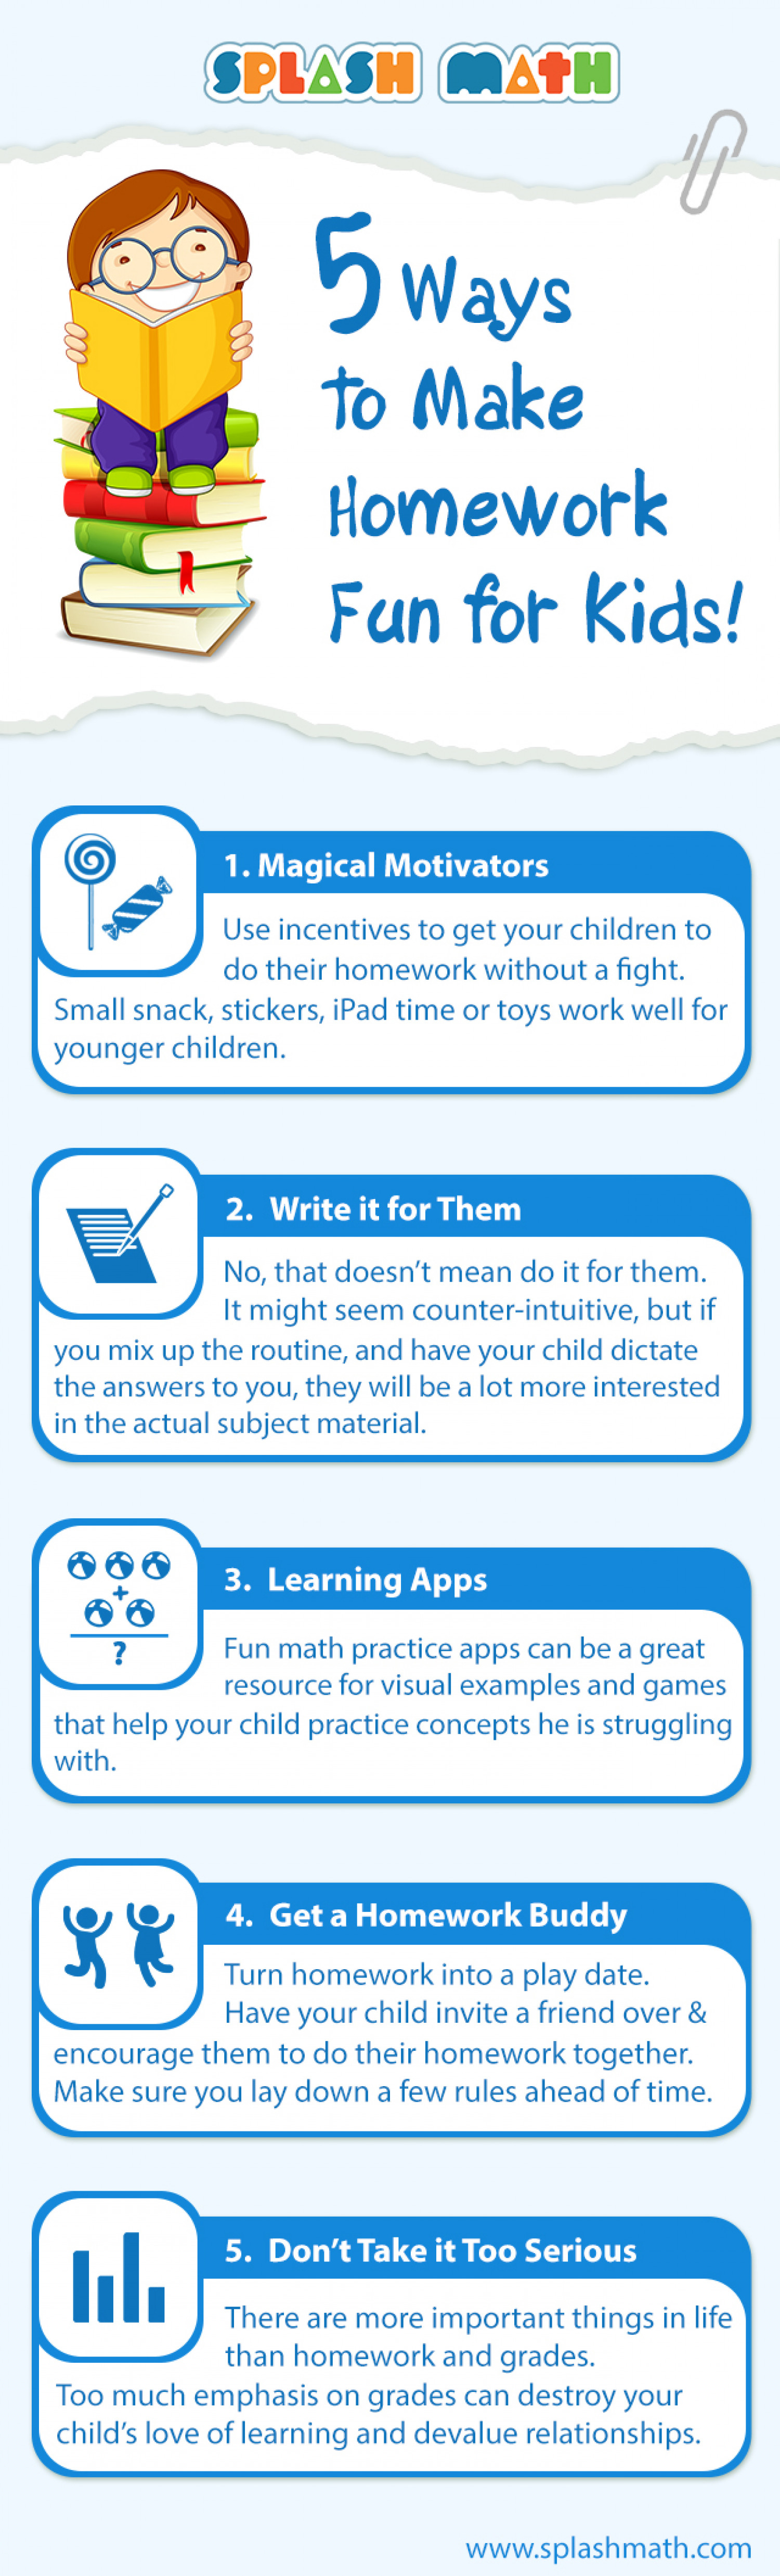 5 Ways to Make Homework Fun for Kids